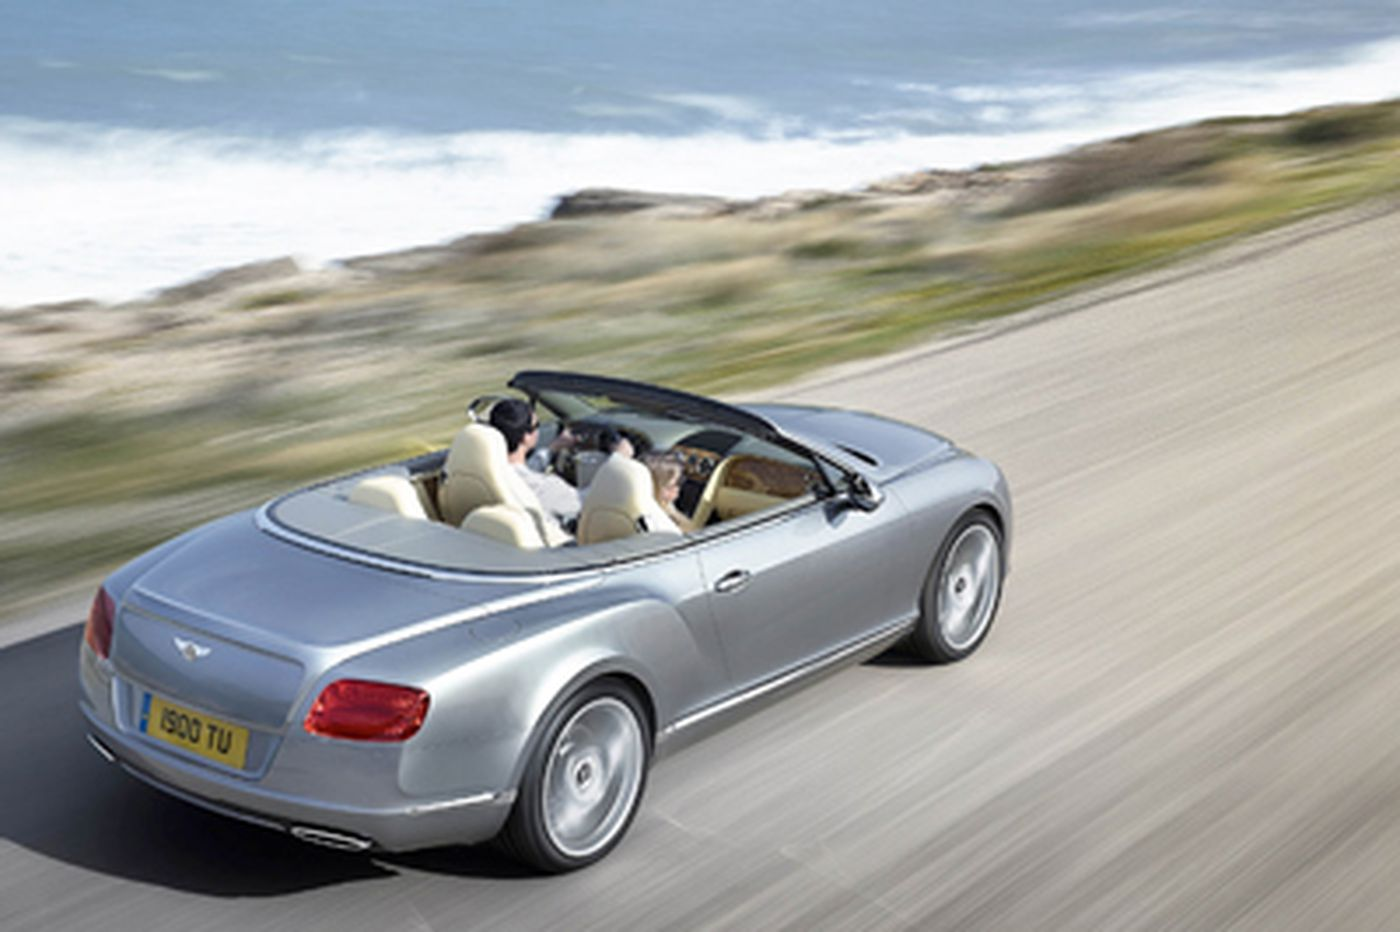 Driver's Seat: How to spend that cool million on wheels